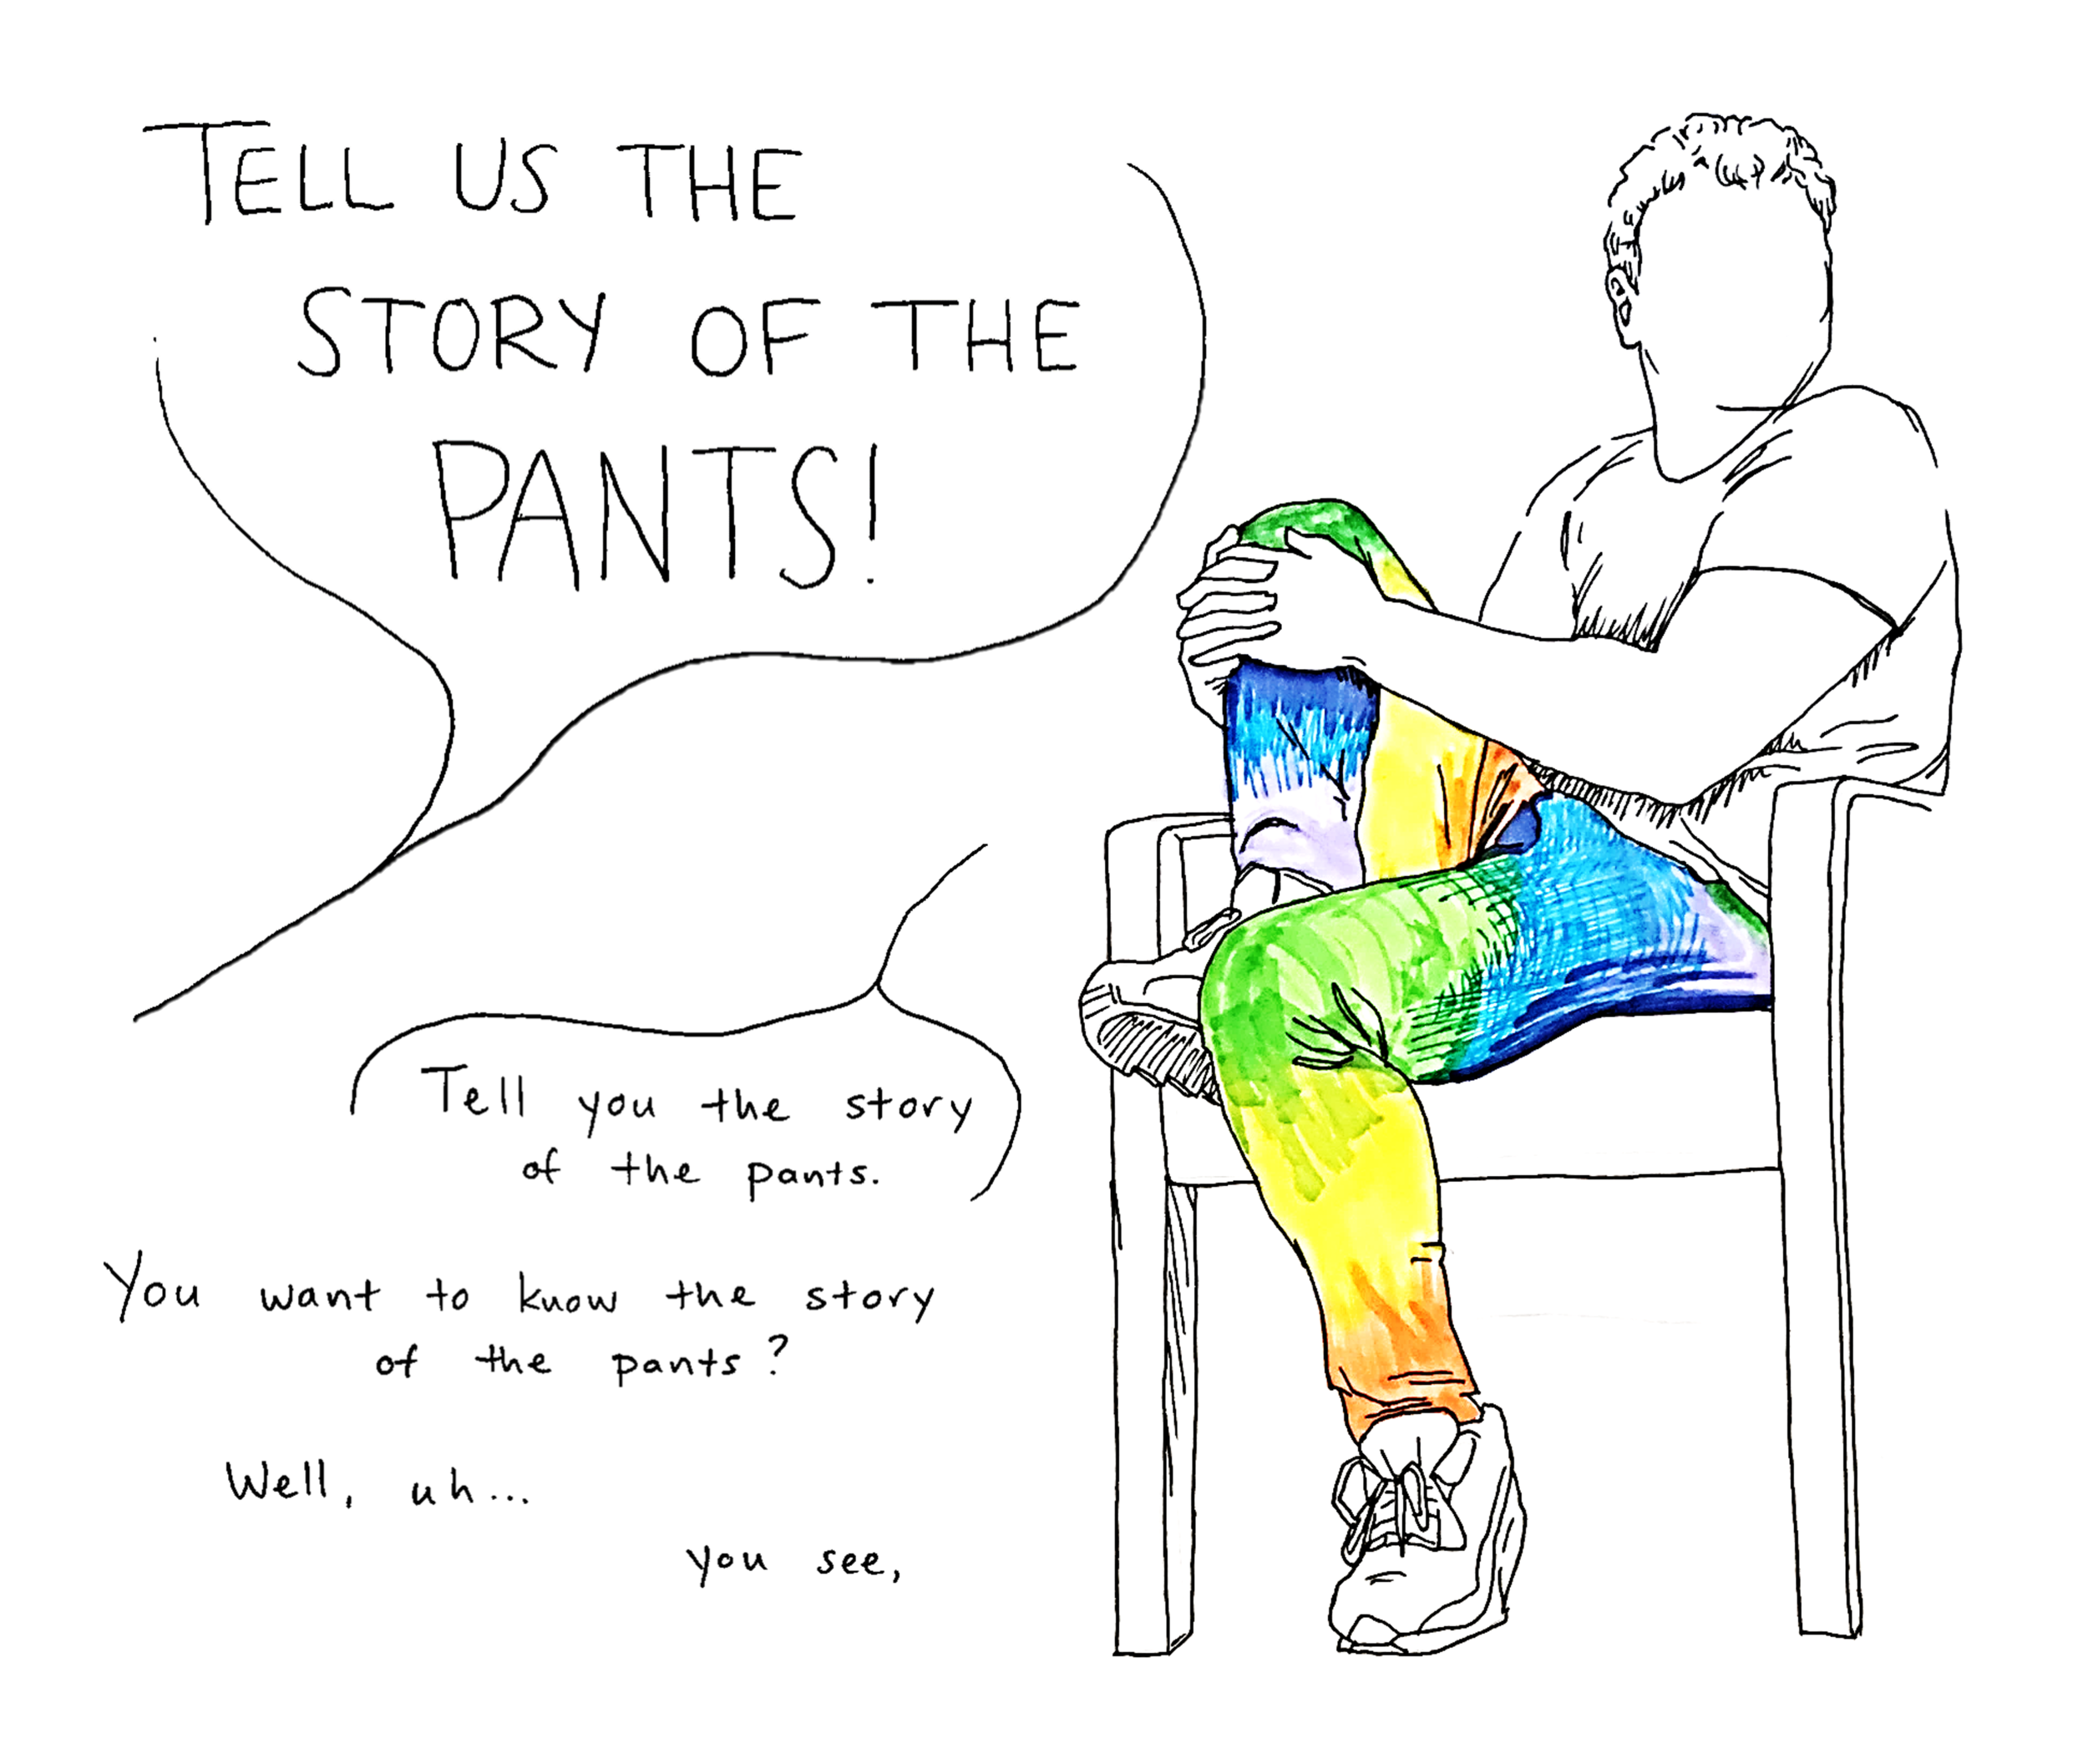 """""""The Story of the Pants"""" Self-Published on  Medium  Oct 3, 2019  Jon Lovett is a straight shooter widely respected on all sides. He earned this reputation (which is seriously fantastic, ask people) as a speechwriter for Hillary Clinton and as a presidential speechwriter in the Obama White House.  Karie Luidens is an Albuquerque-based writer of criticism, commentary, current events, and semi-connected musings. She's yet to earn much of a reputation. When she heard Jon's off-the-cuff explanation of his rainbow pants on the latest episode of Lovett or Leave It, she found it so compelling, she spent the rest of the episode doodling the above.  […]"""